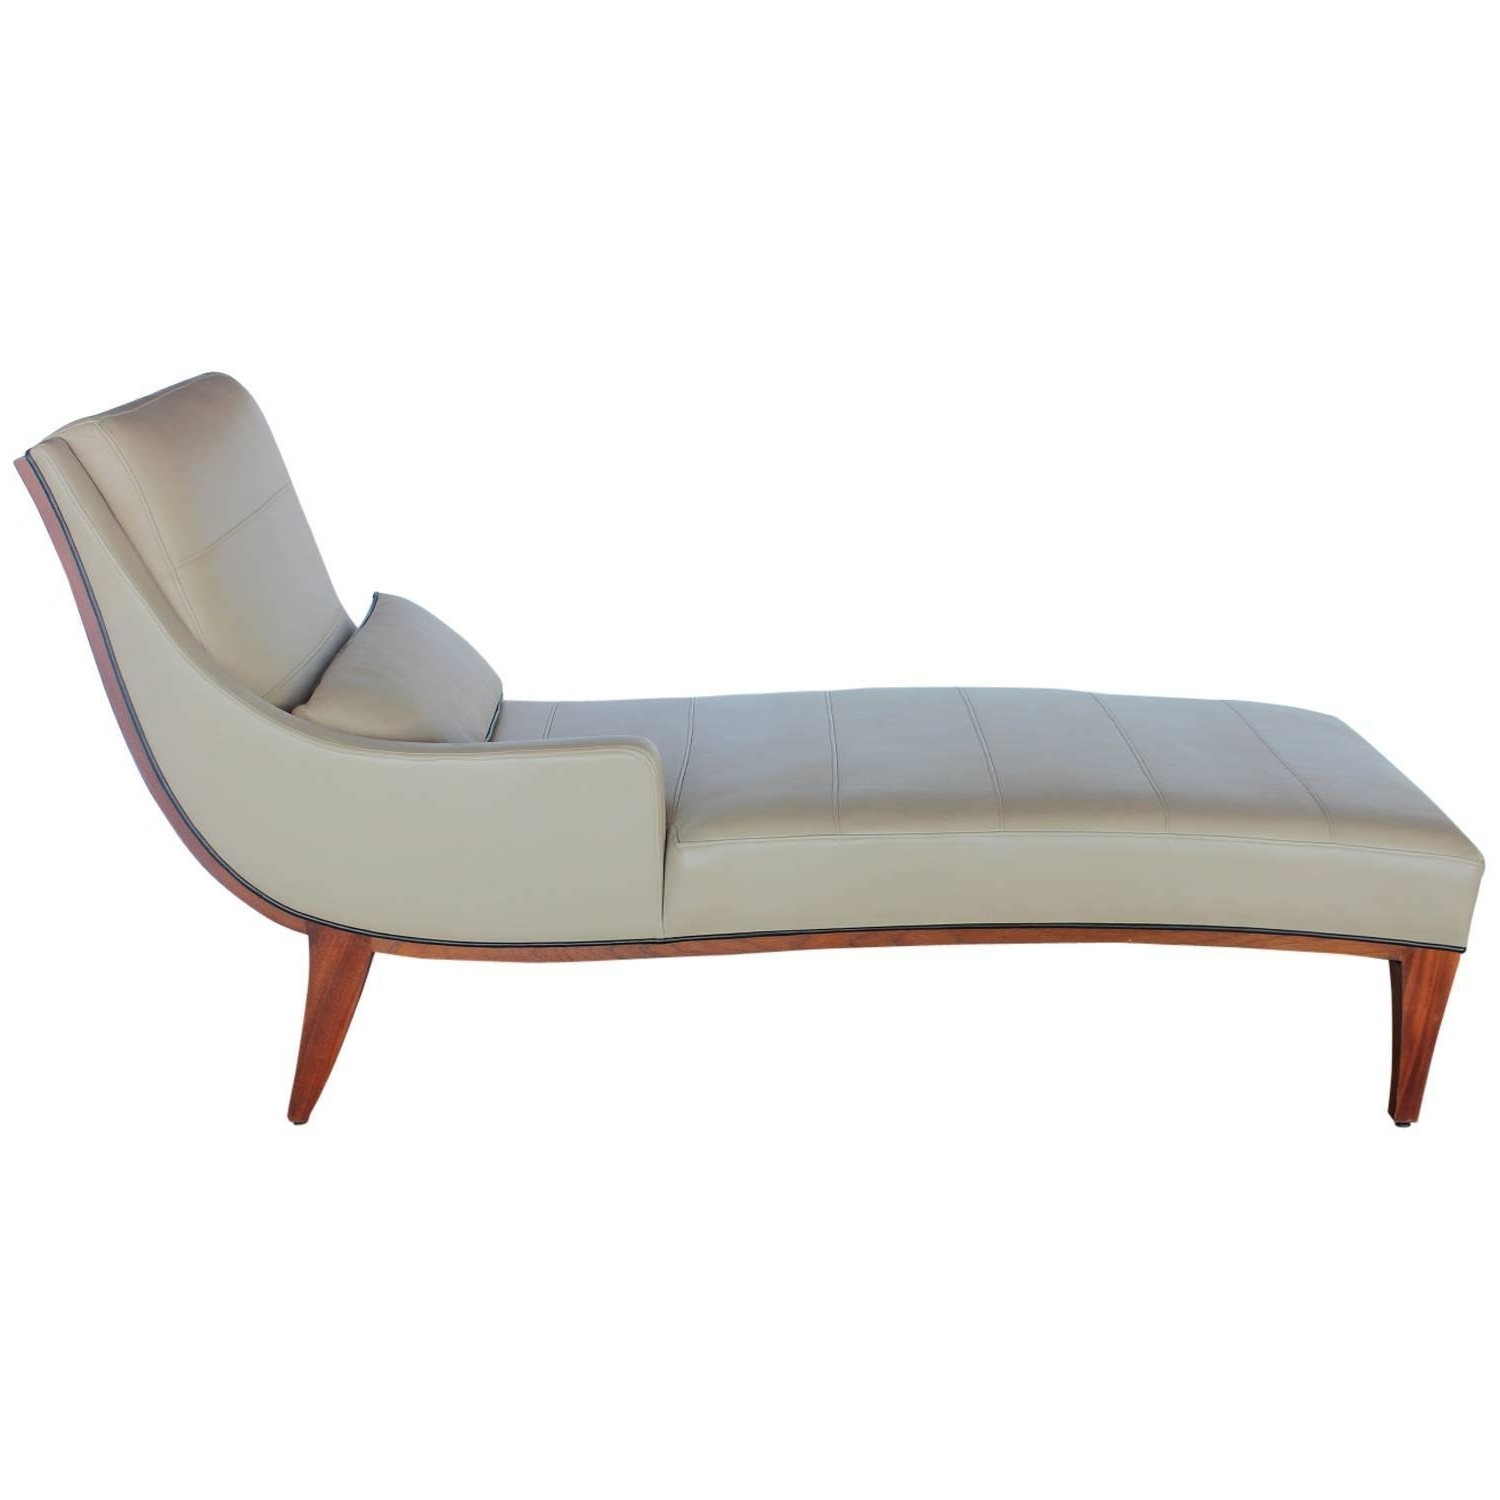 Furniture: Modern Leather Chaise Loungewiddicomb At 1Stdibs Regarding Well Known Modern Chaise Lounges (View 9 of 15)